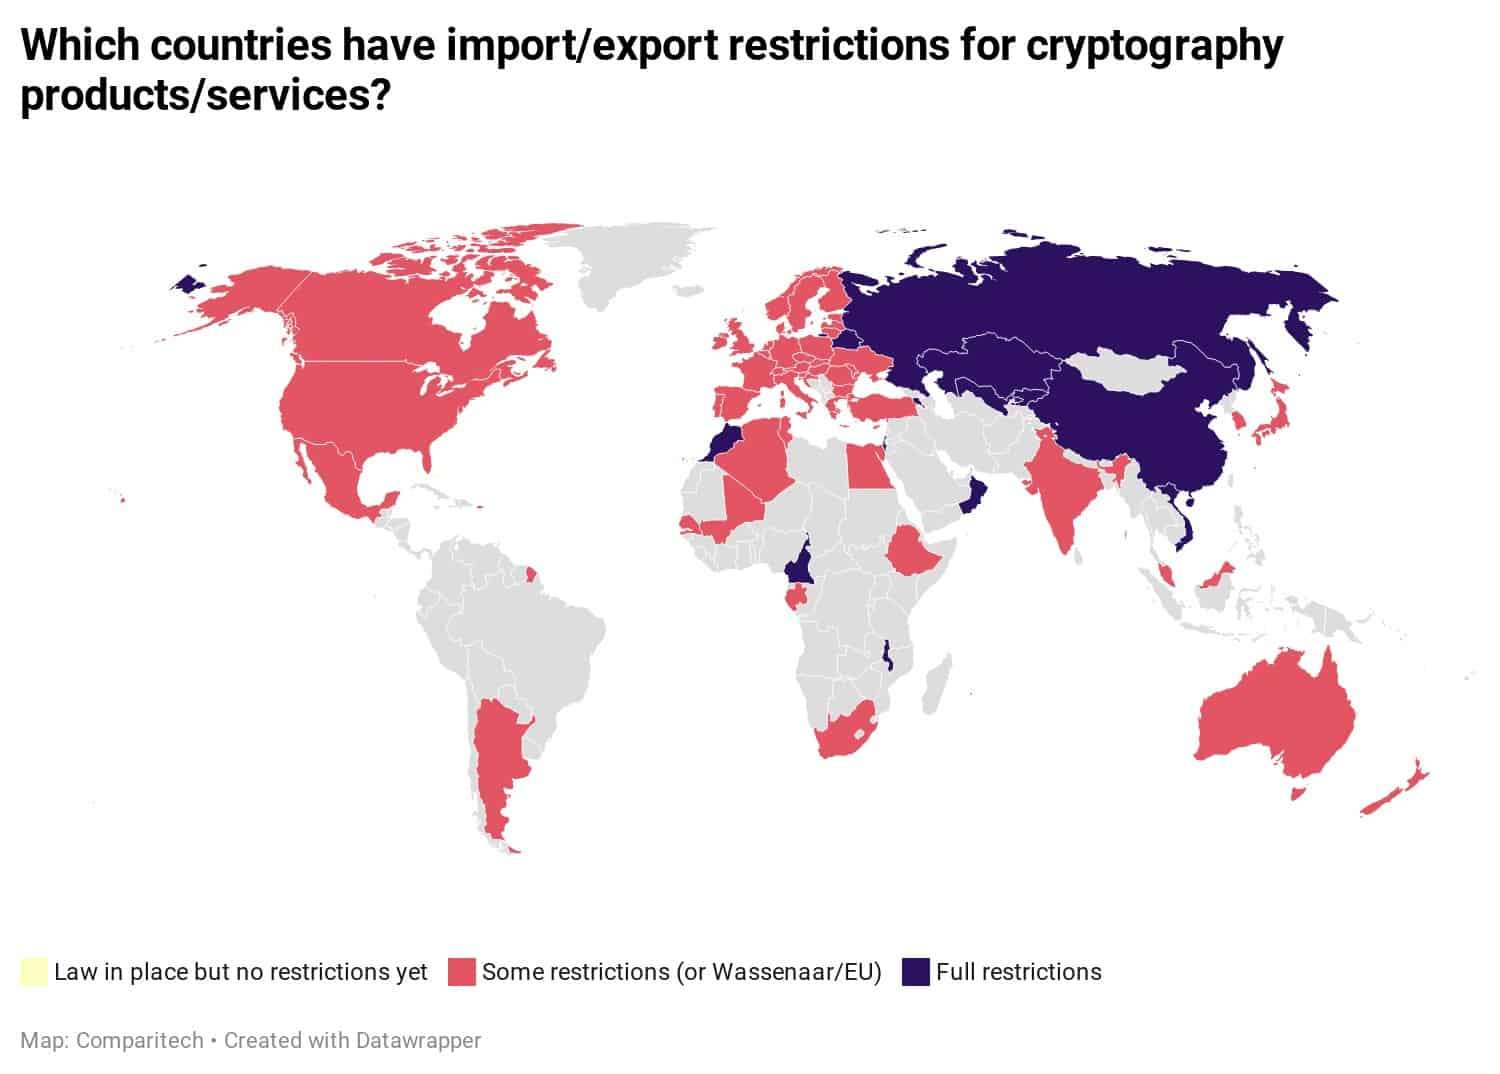 Cryptography import and export restrictions worldwide